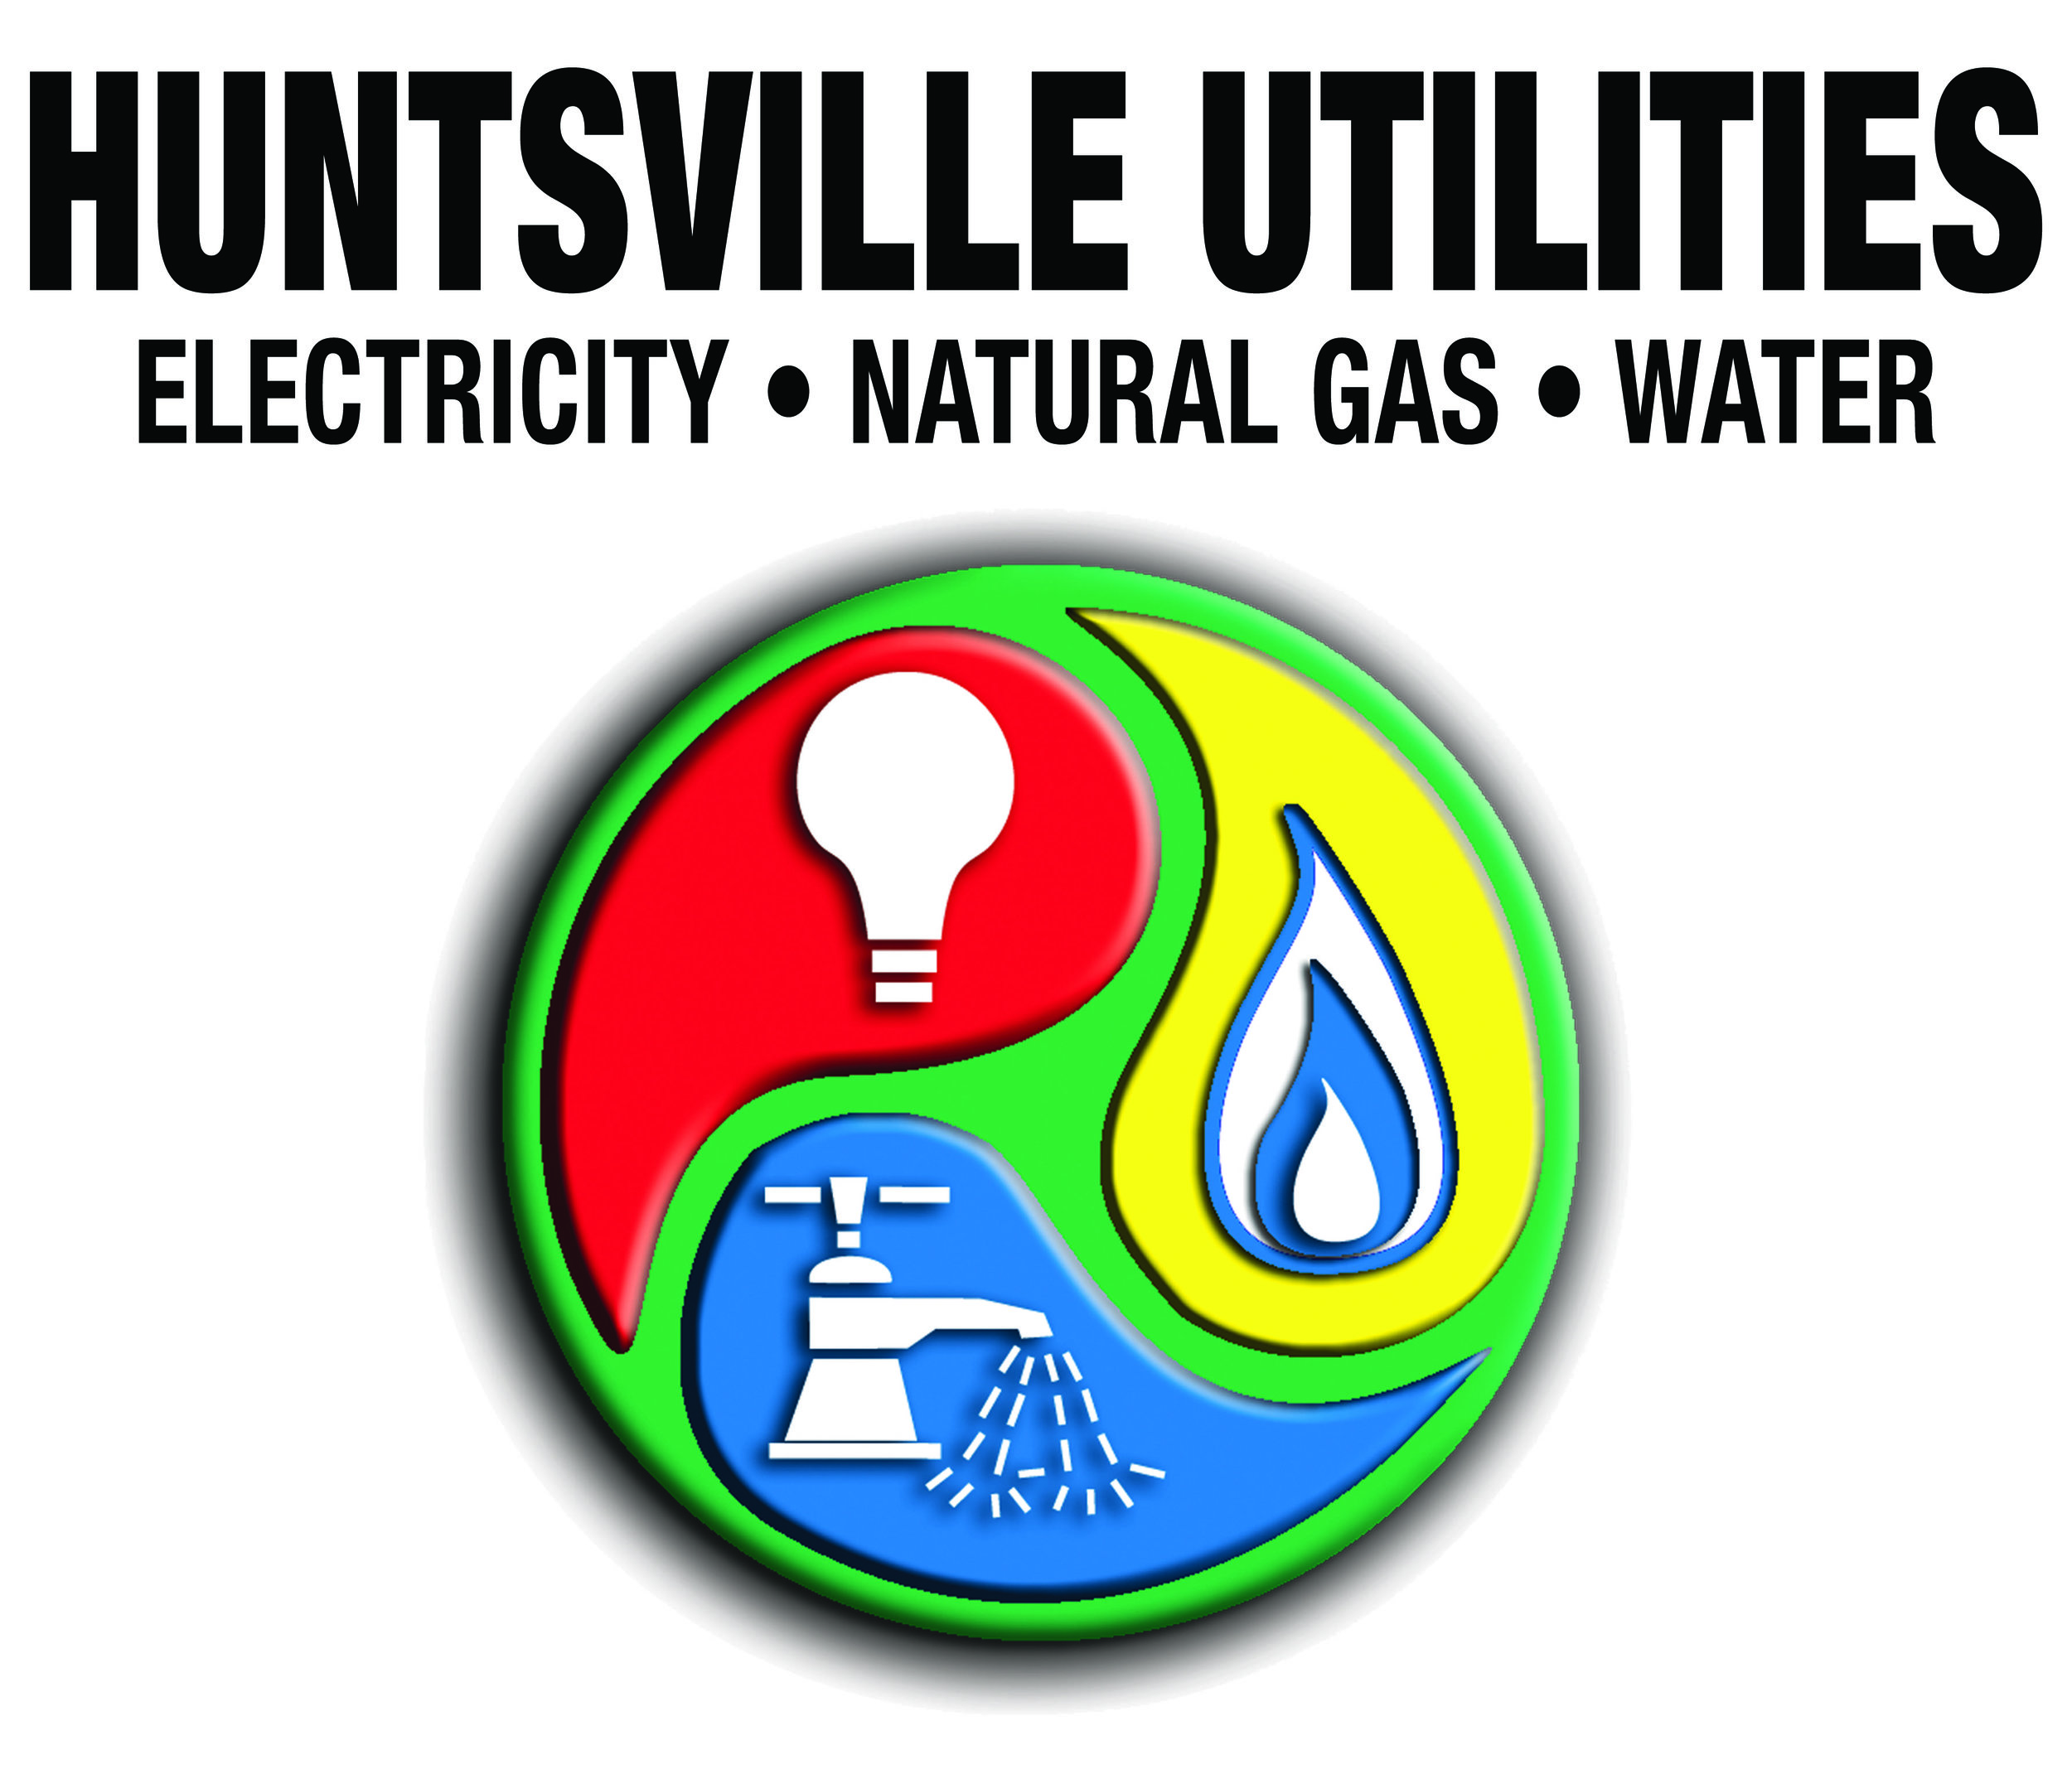 Hsv Utilities Logo1.jpg